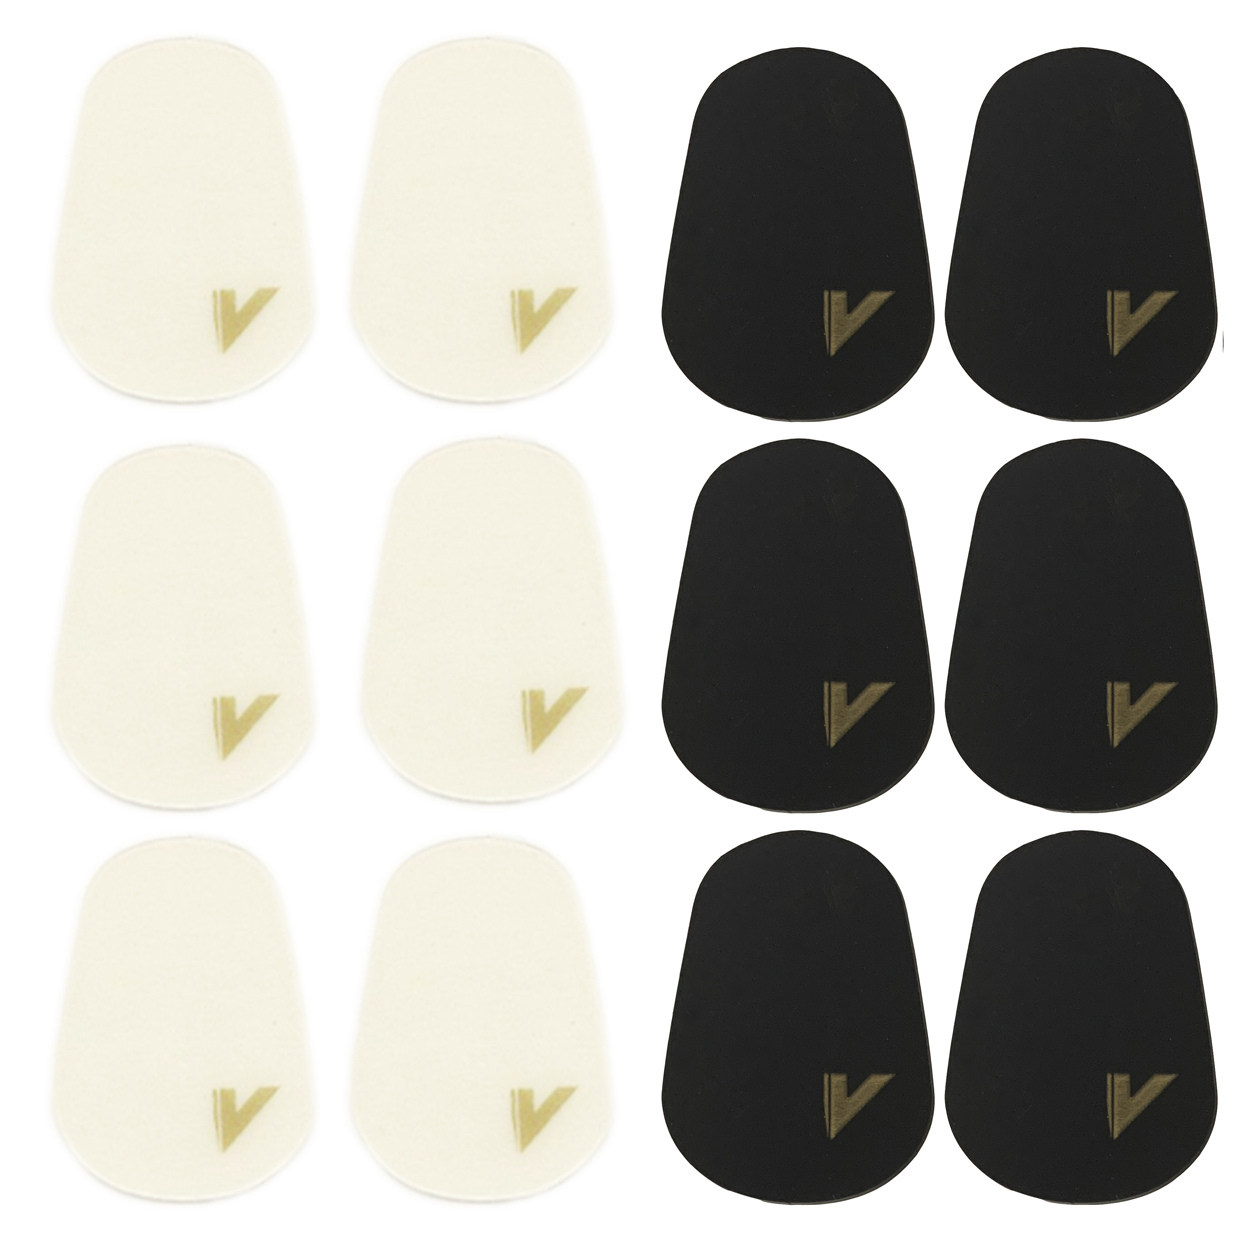 Vandoren Mouthpiece Cushions (6 per pack) - NEW & IMPROVED FOR 2021